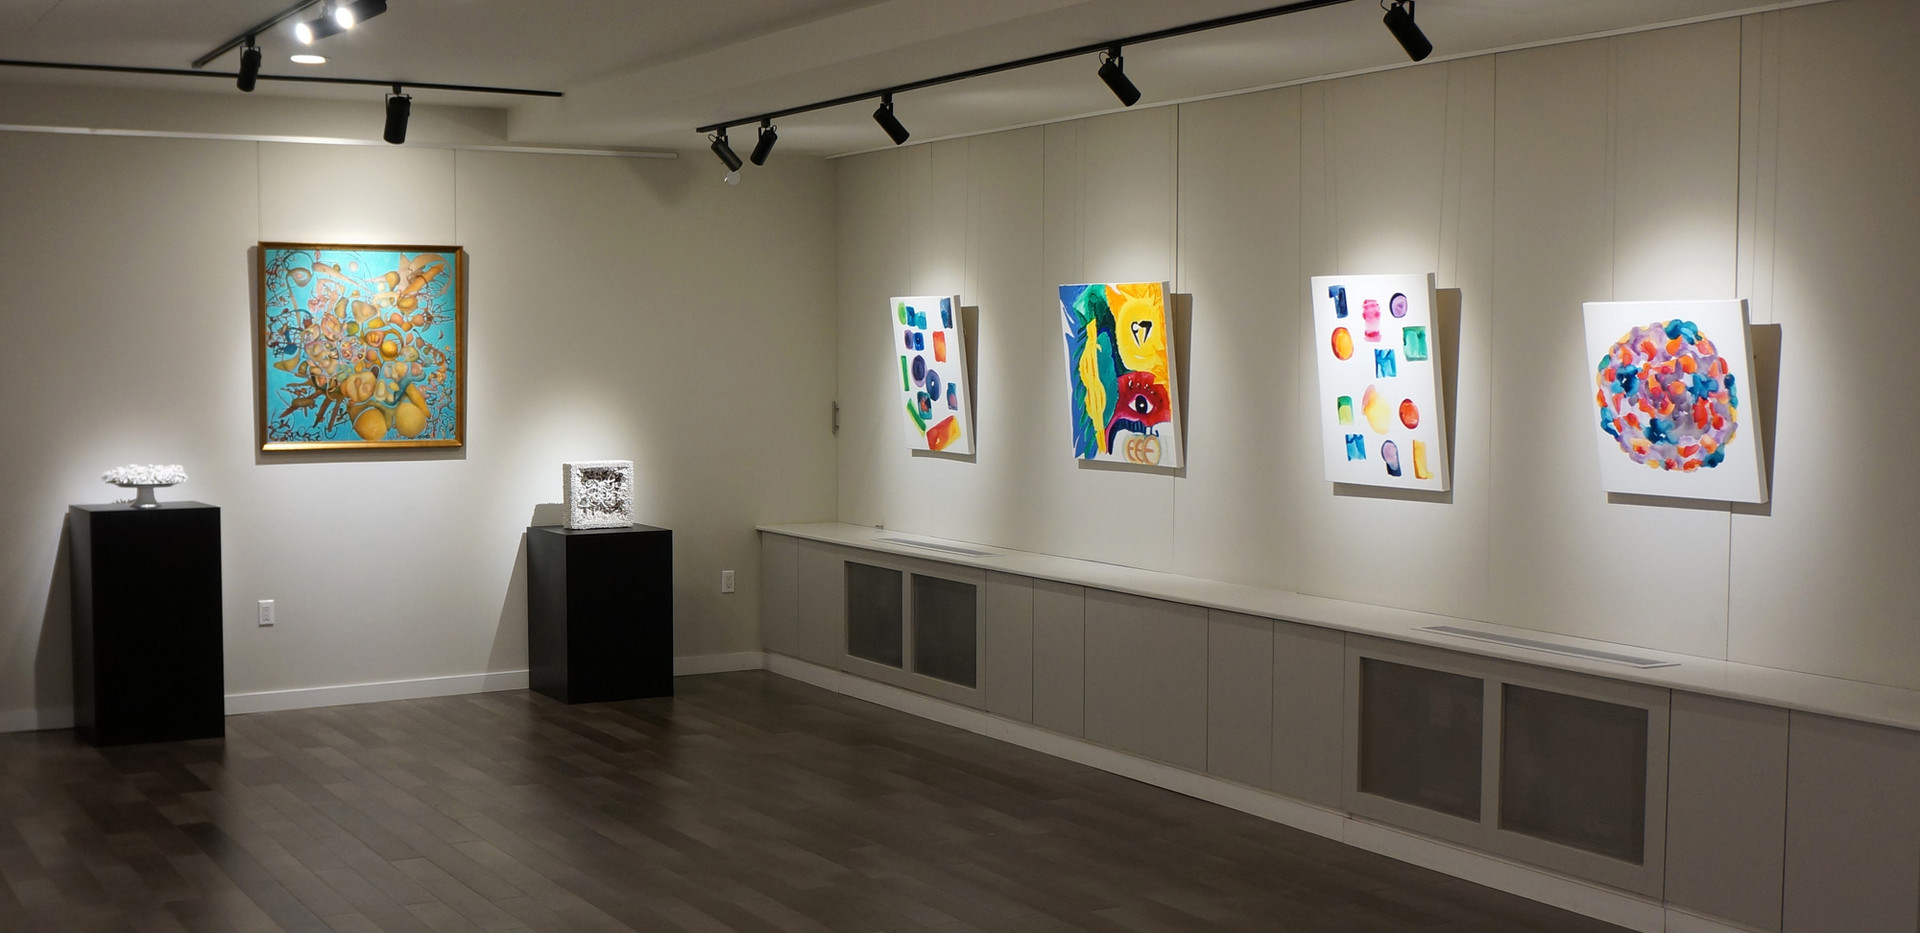 Installation image of Autumn Exhibition.JPG